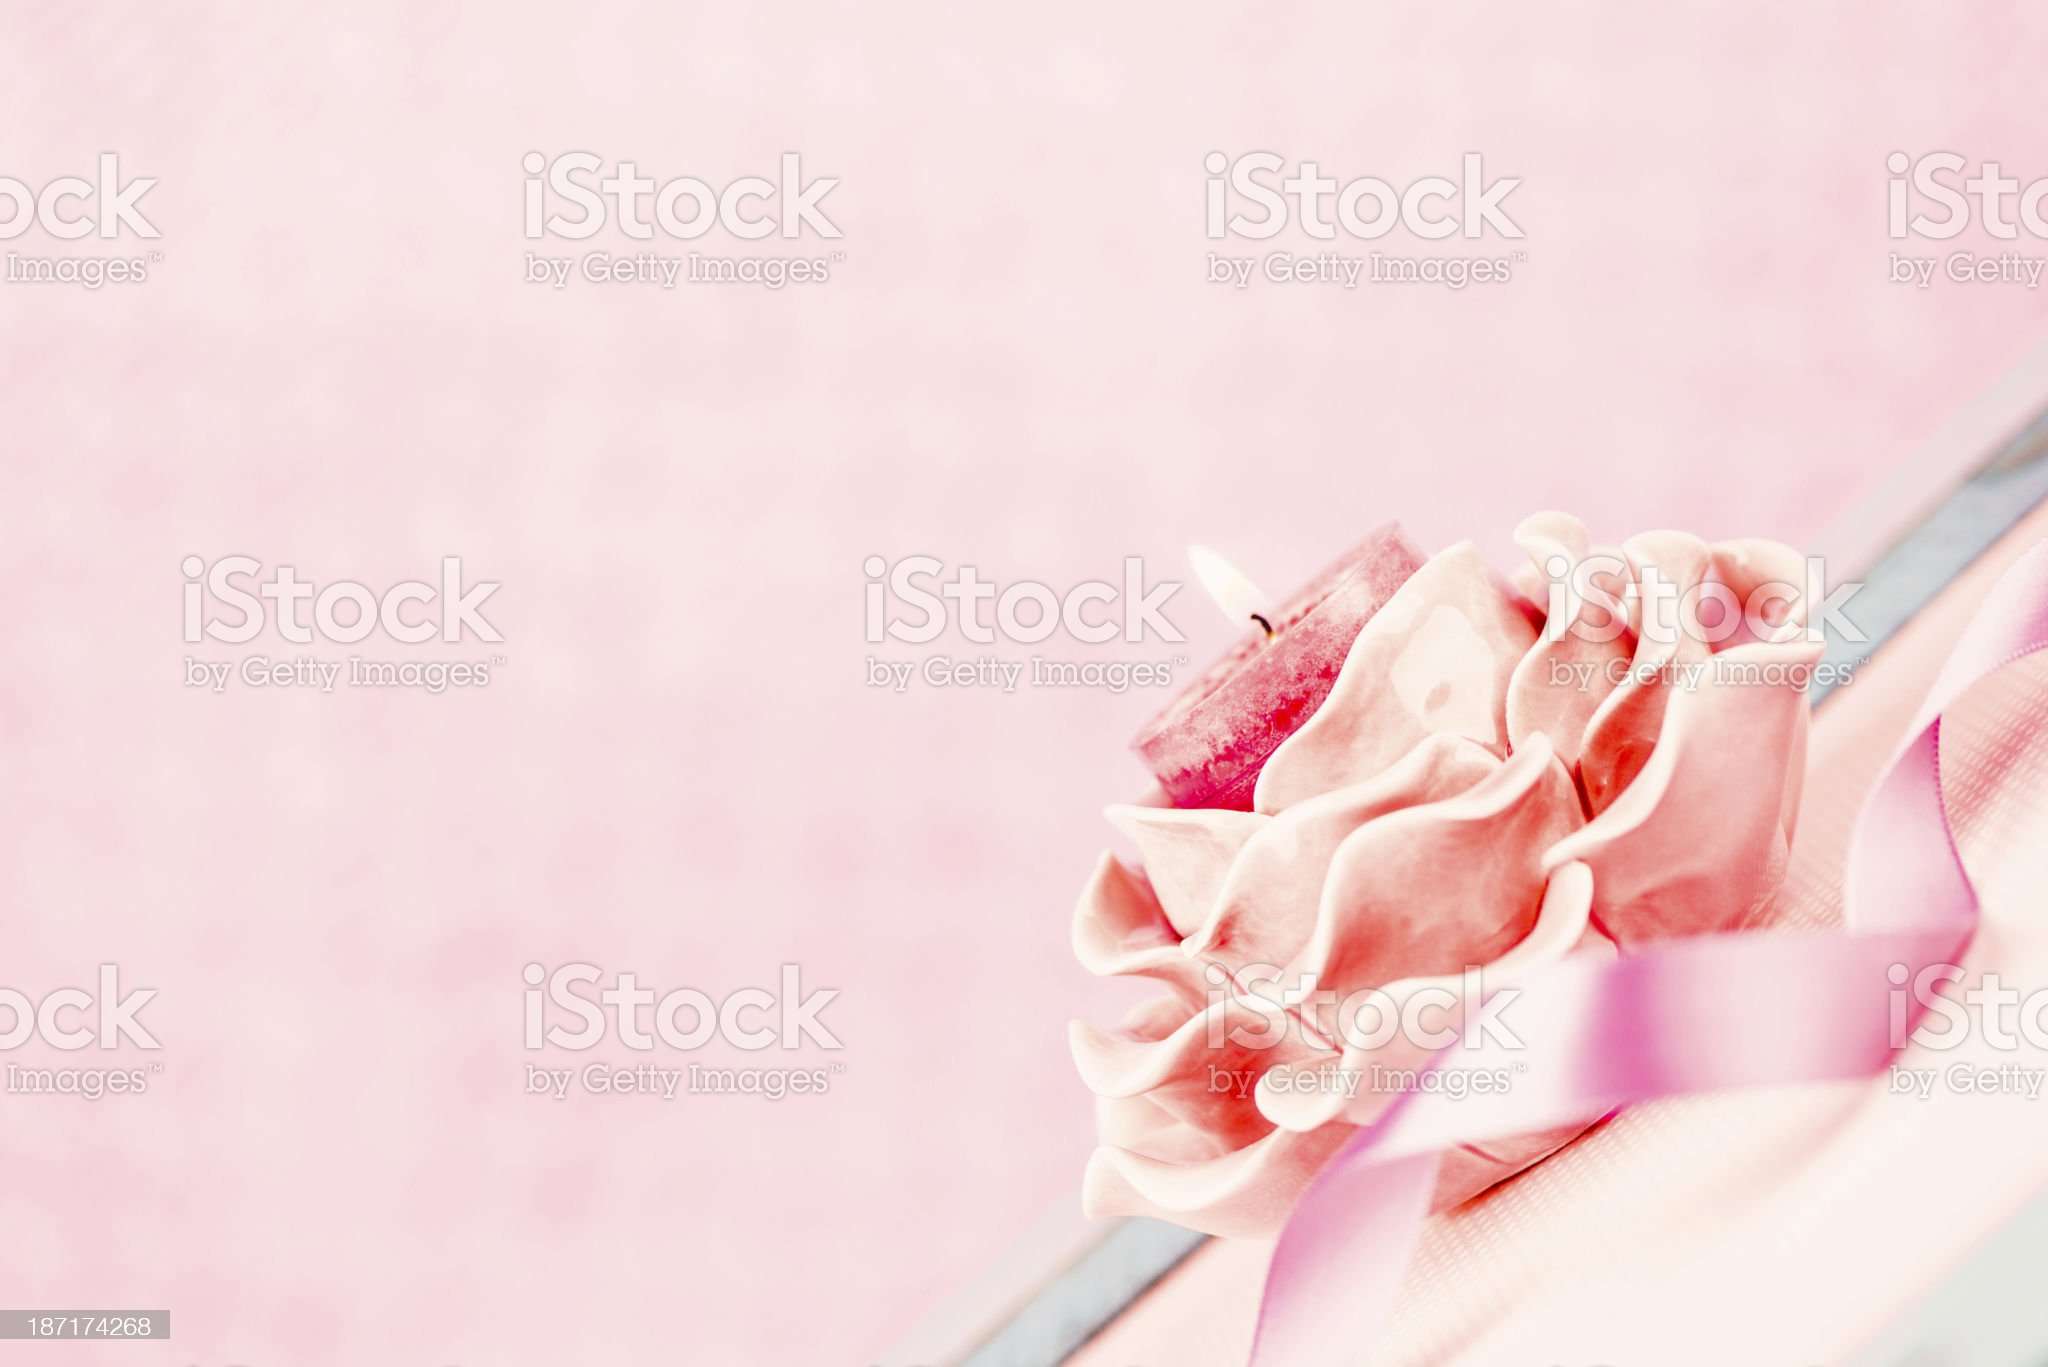 Pink Memorial Candle with Ribbon royalty-free stock photo